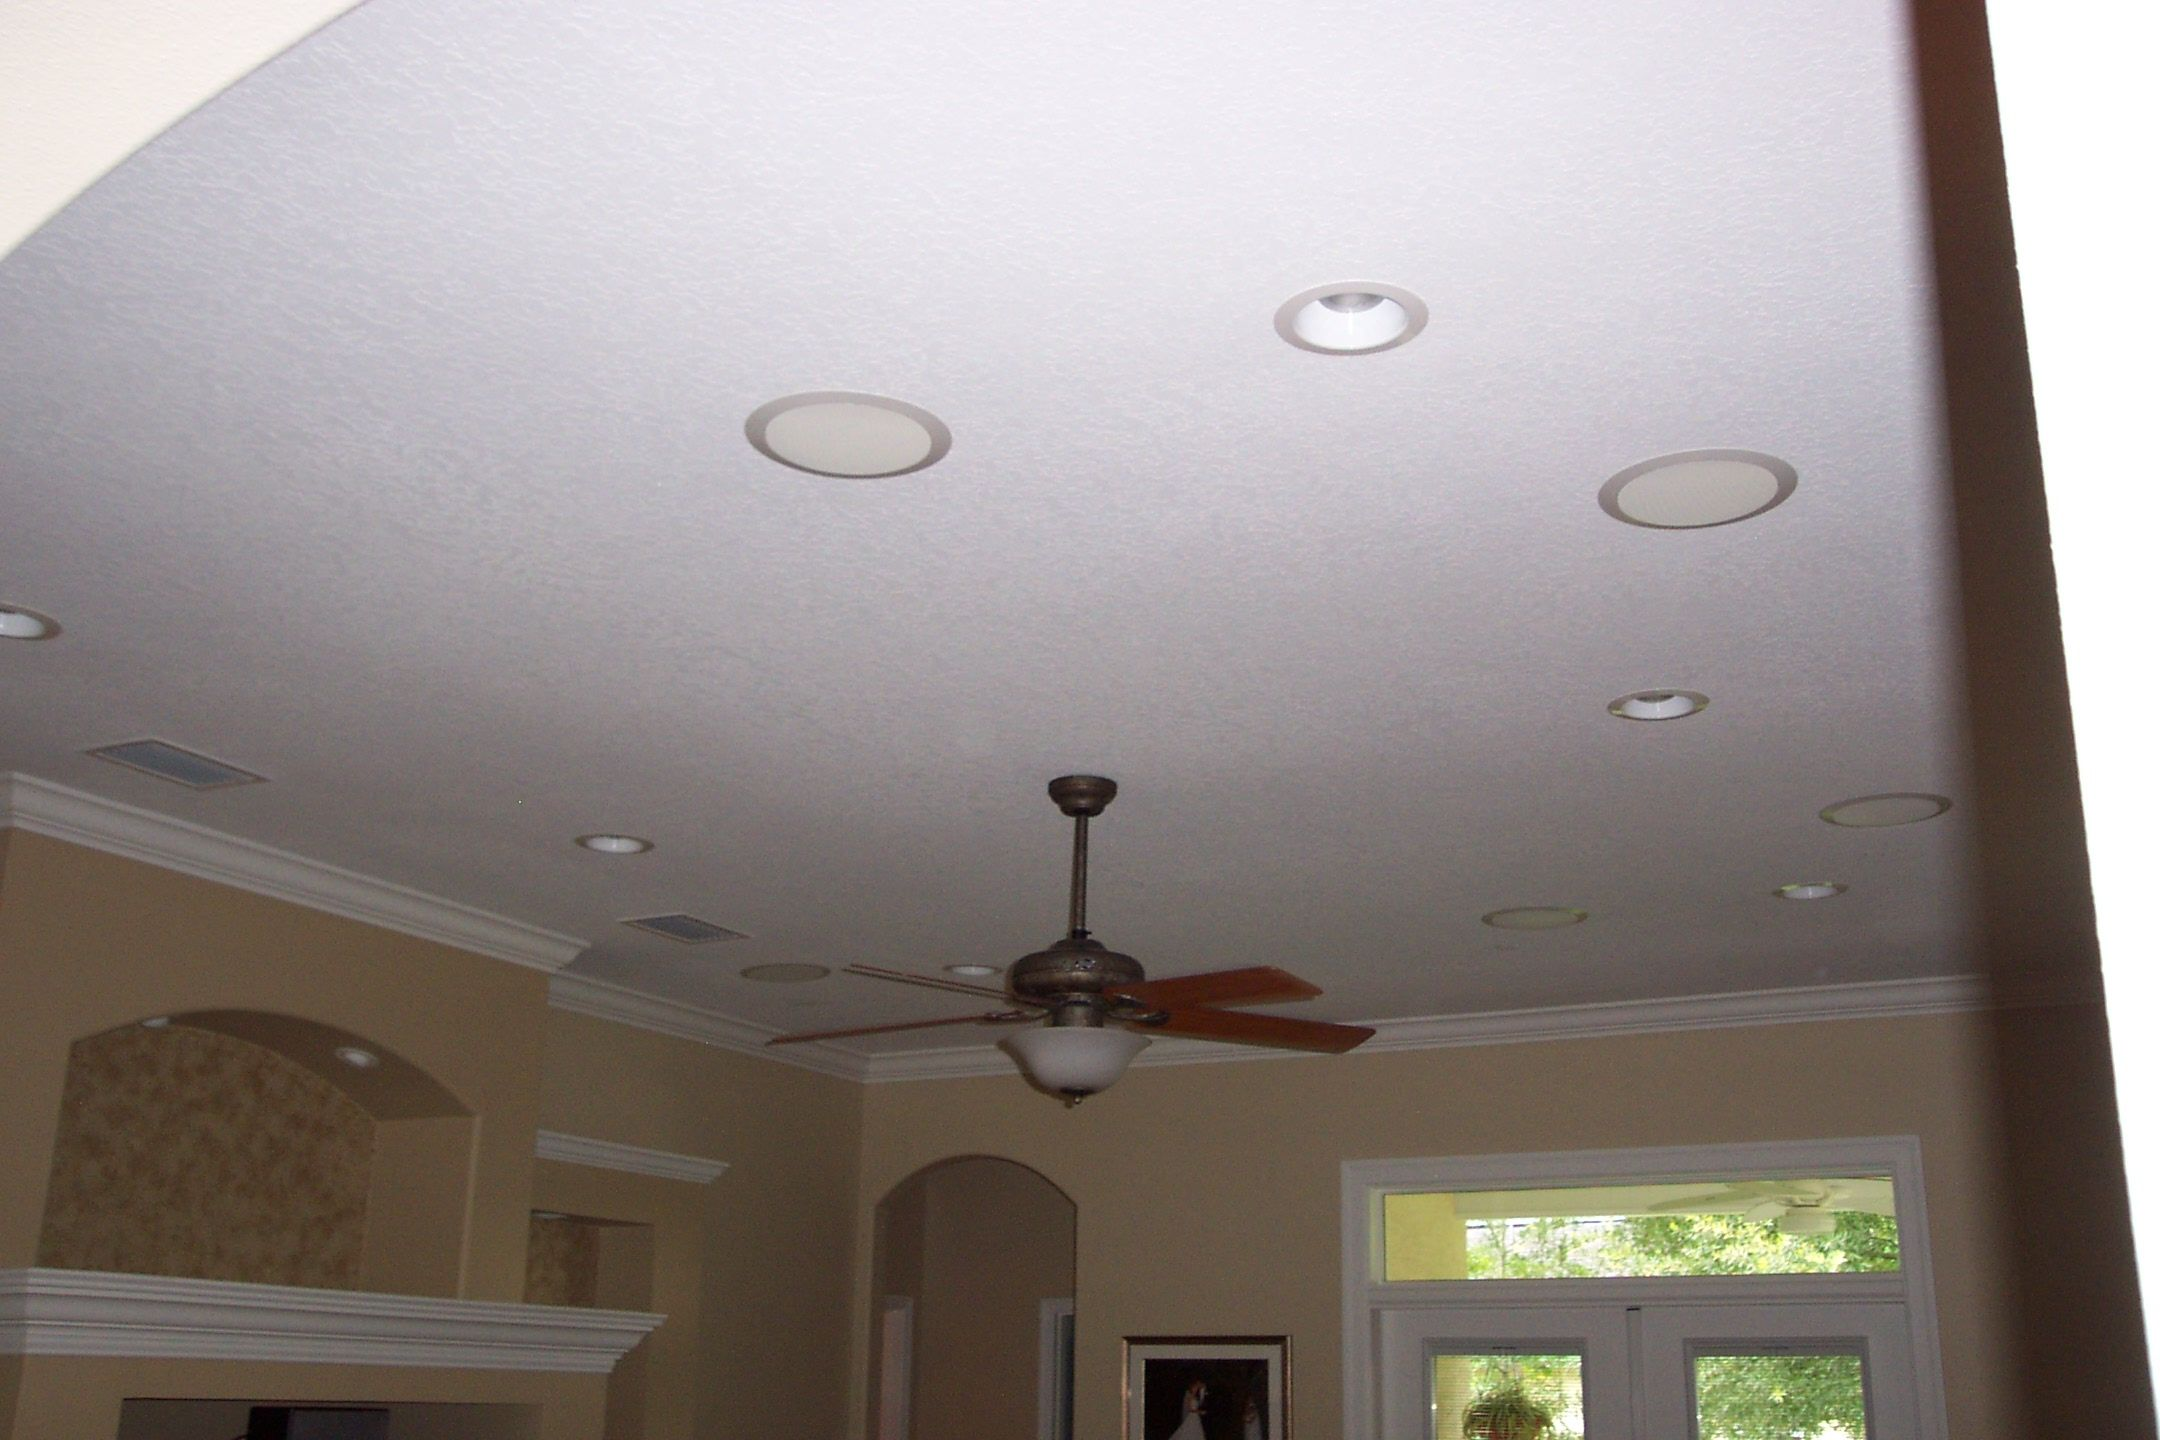 in sound wall install easily speaker for invisible installation surround speakers audio ceilings home diy ceiling